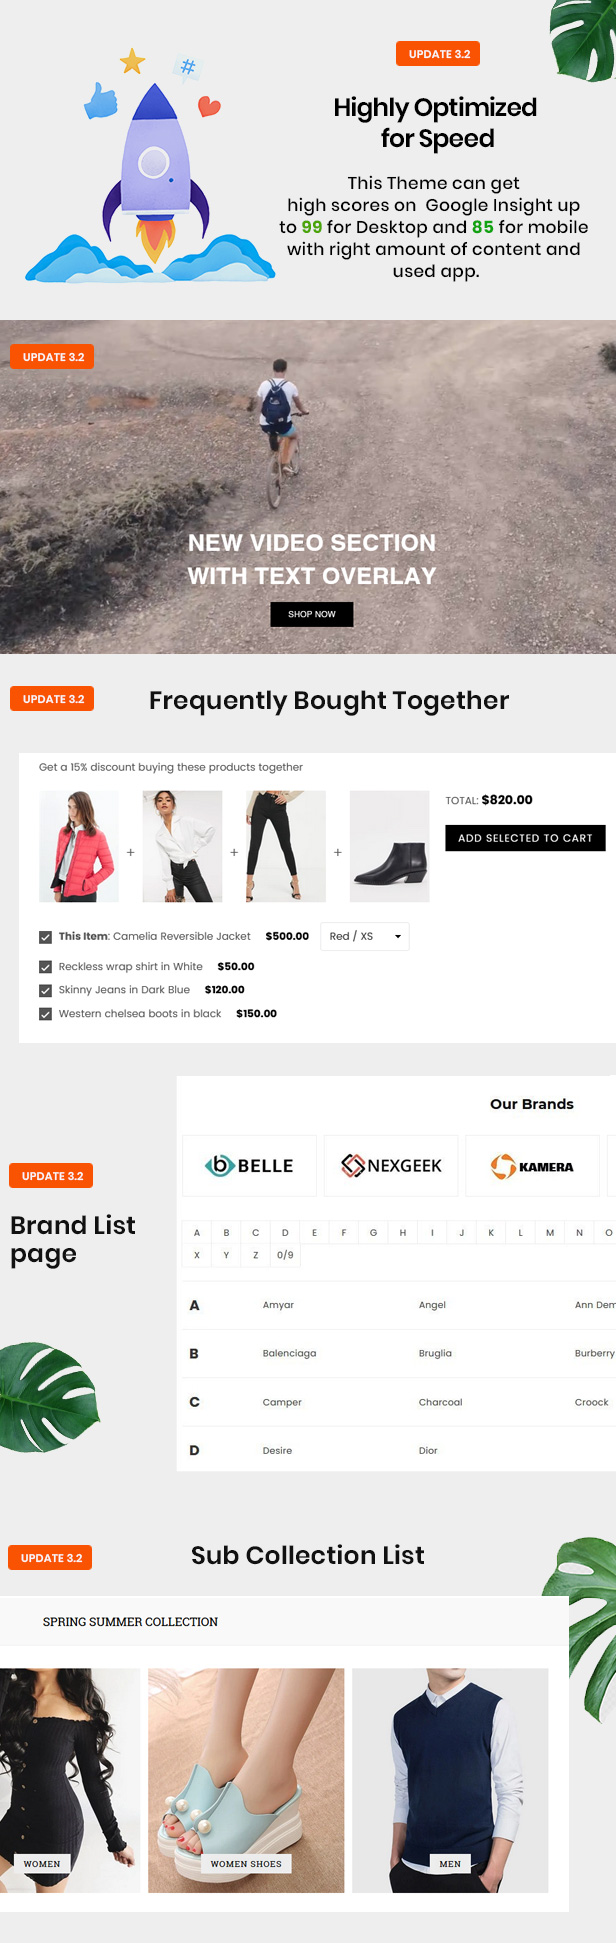 preview v32 - Belle - Clothing and Fashion Shopify Theme